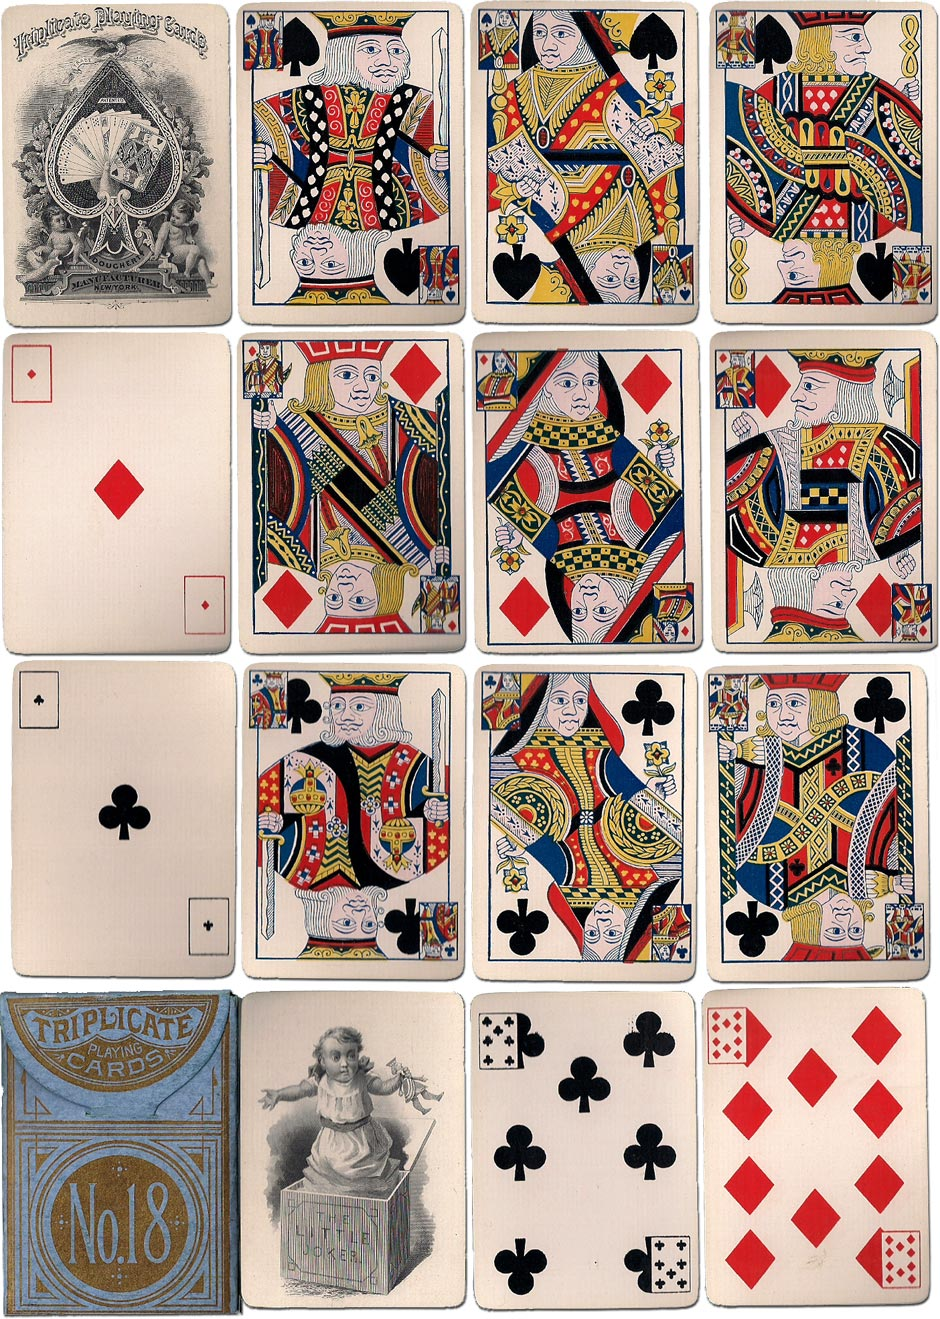 'Triplicate No.18' playing cards by Andrew Dougherty, c.1878